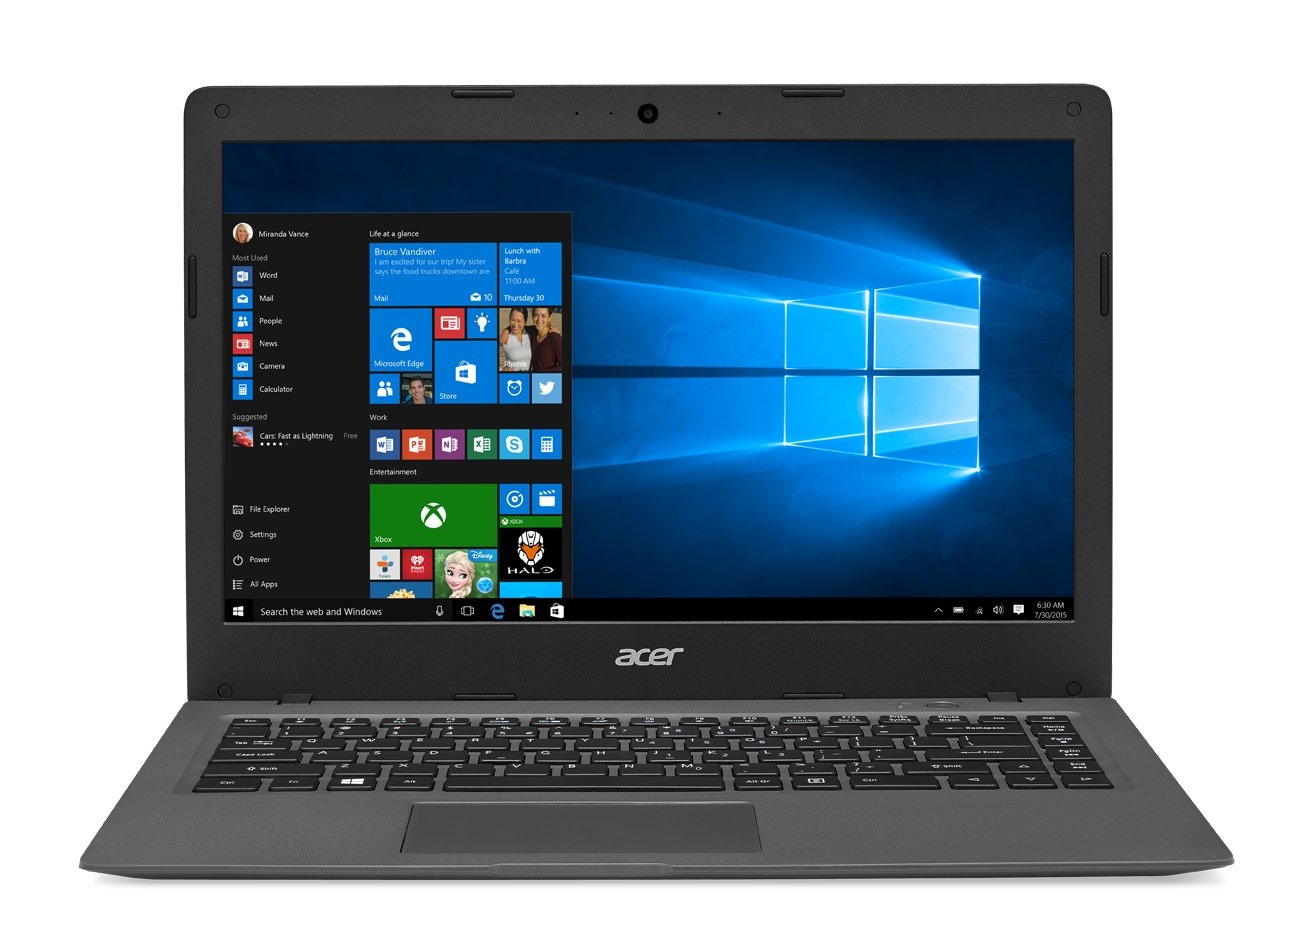 Acer Aspire One Cloudbook, 14-Inch HD, 64GB, Windows 10, Gray (AO1-431-C7F9) includes Office 365 Personal - 1 year